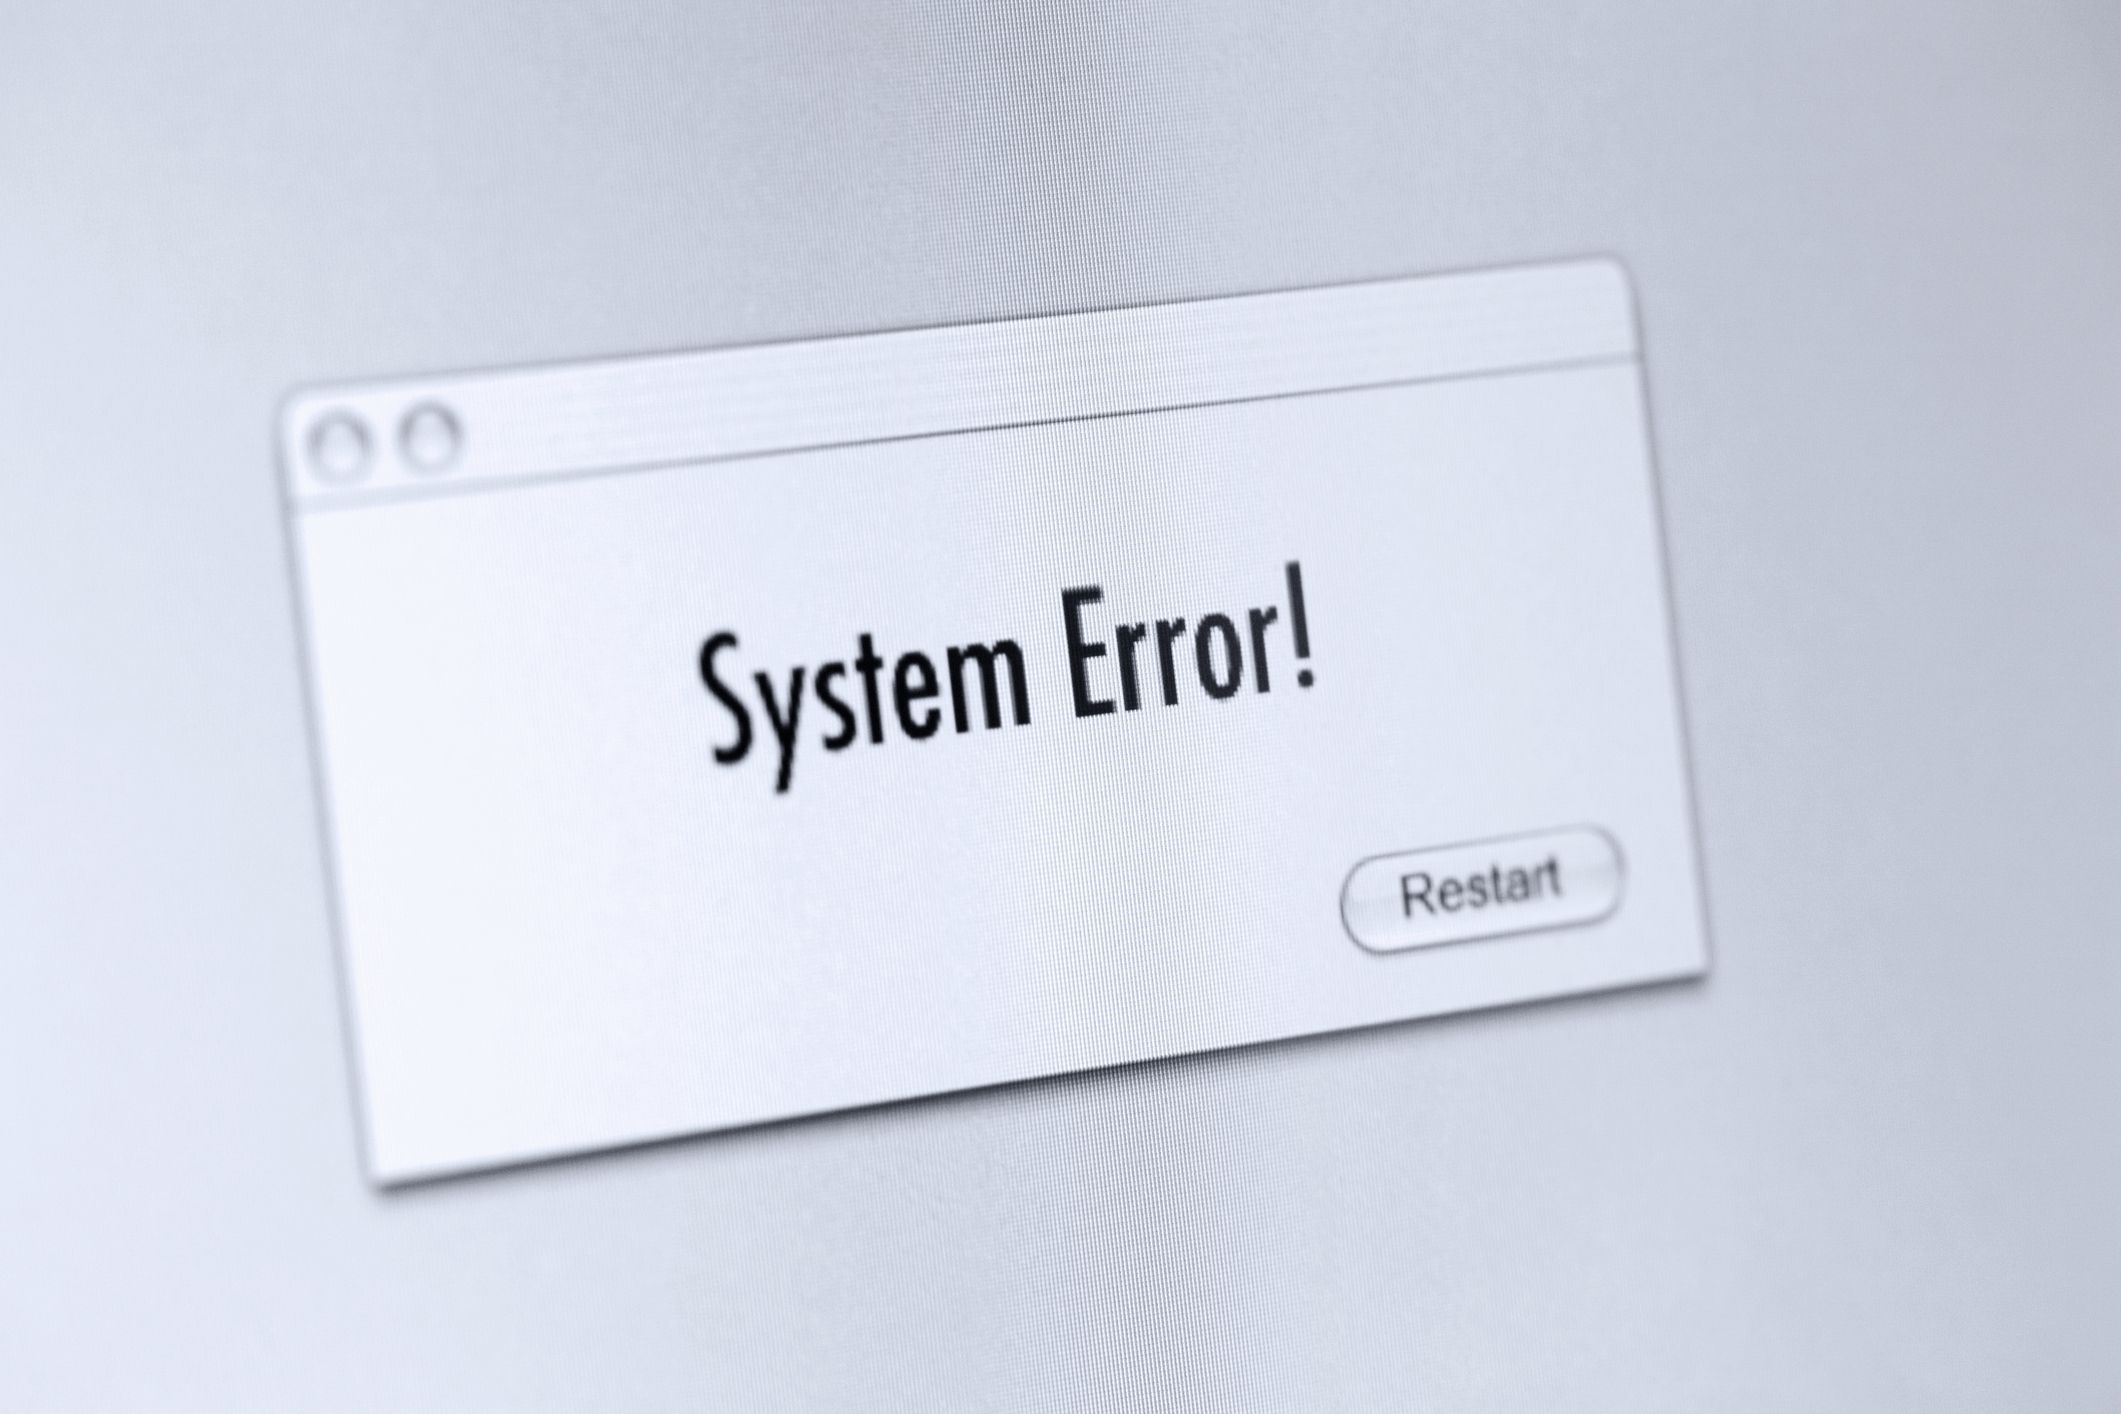 system error codes 1 to 15841 what each one means